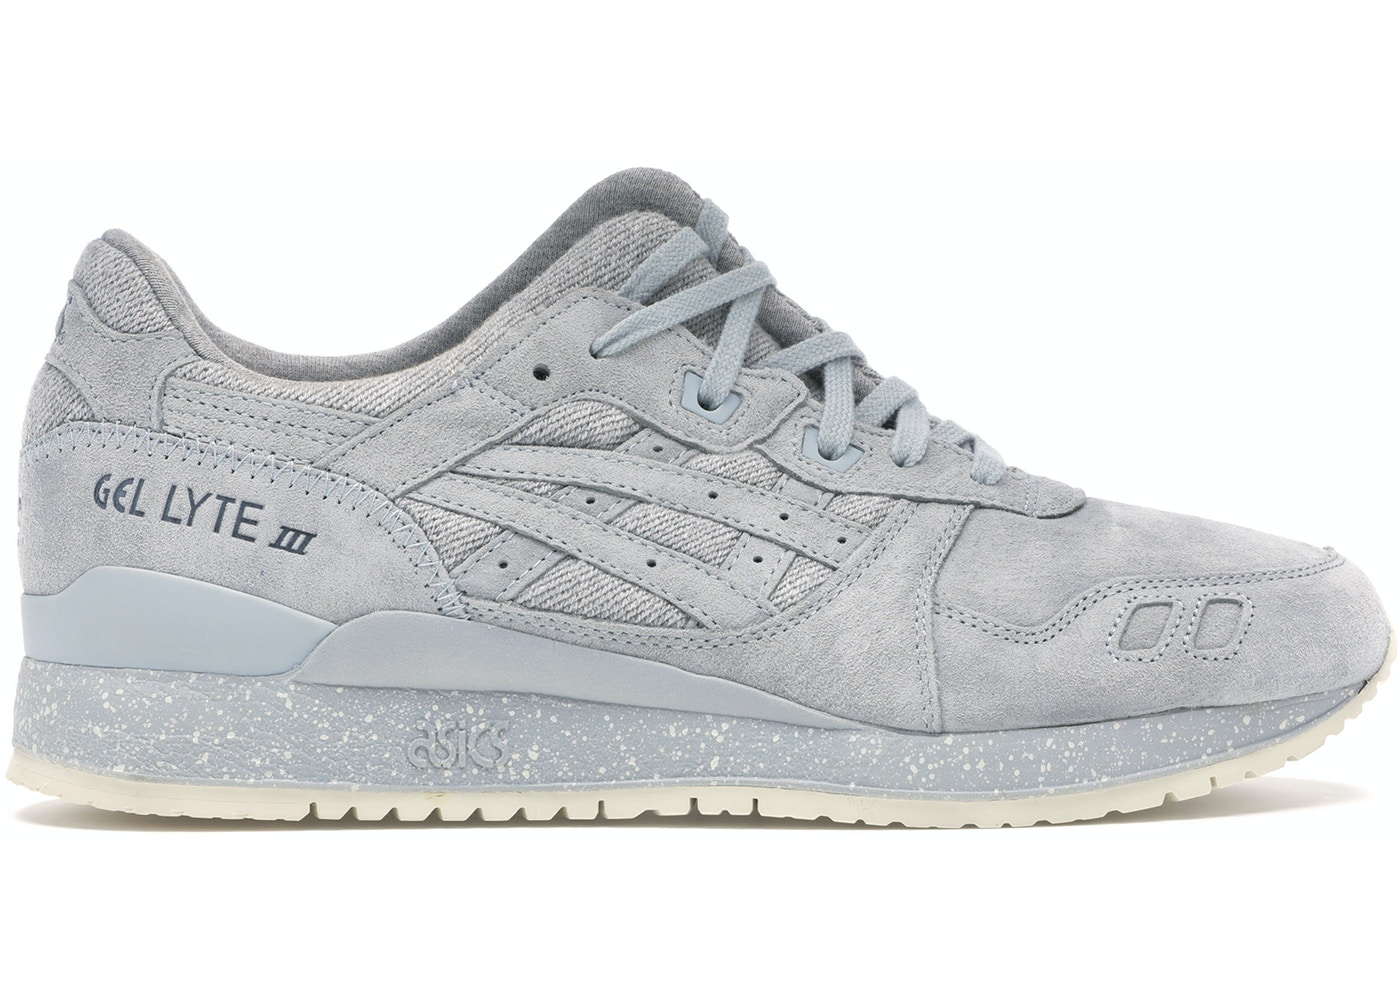 new product d4406 9b75f ASICS Gel-Lyte III Reigning Champ Grey